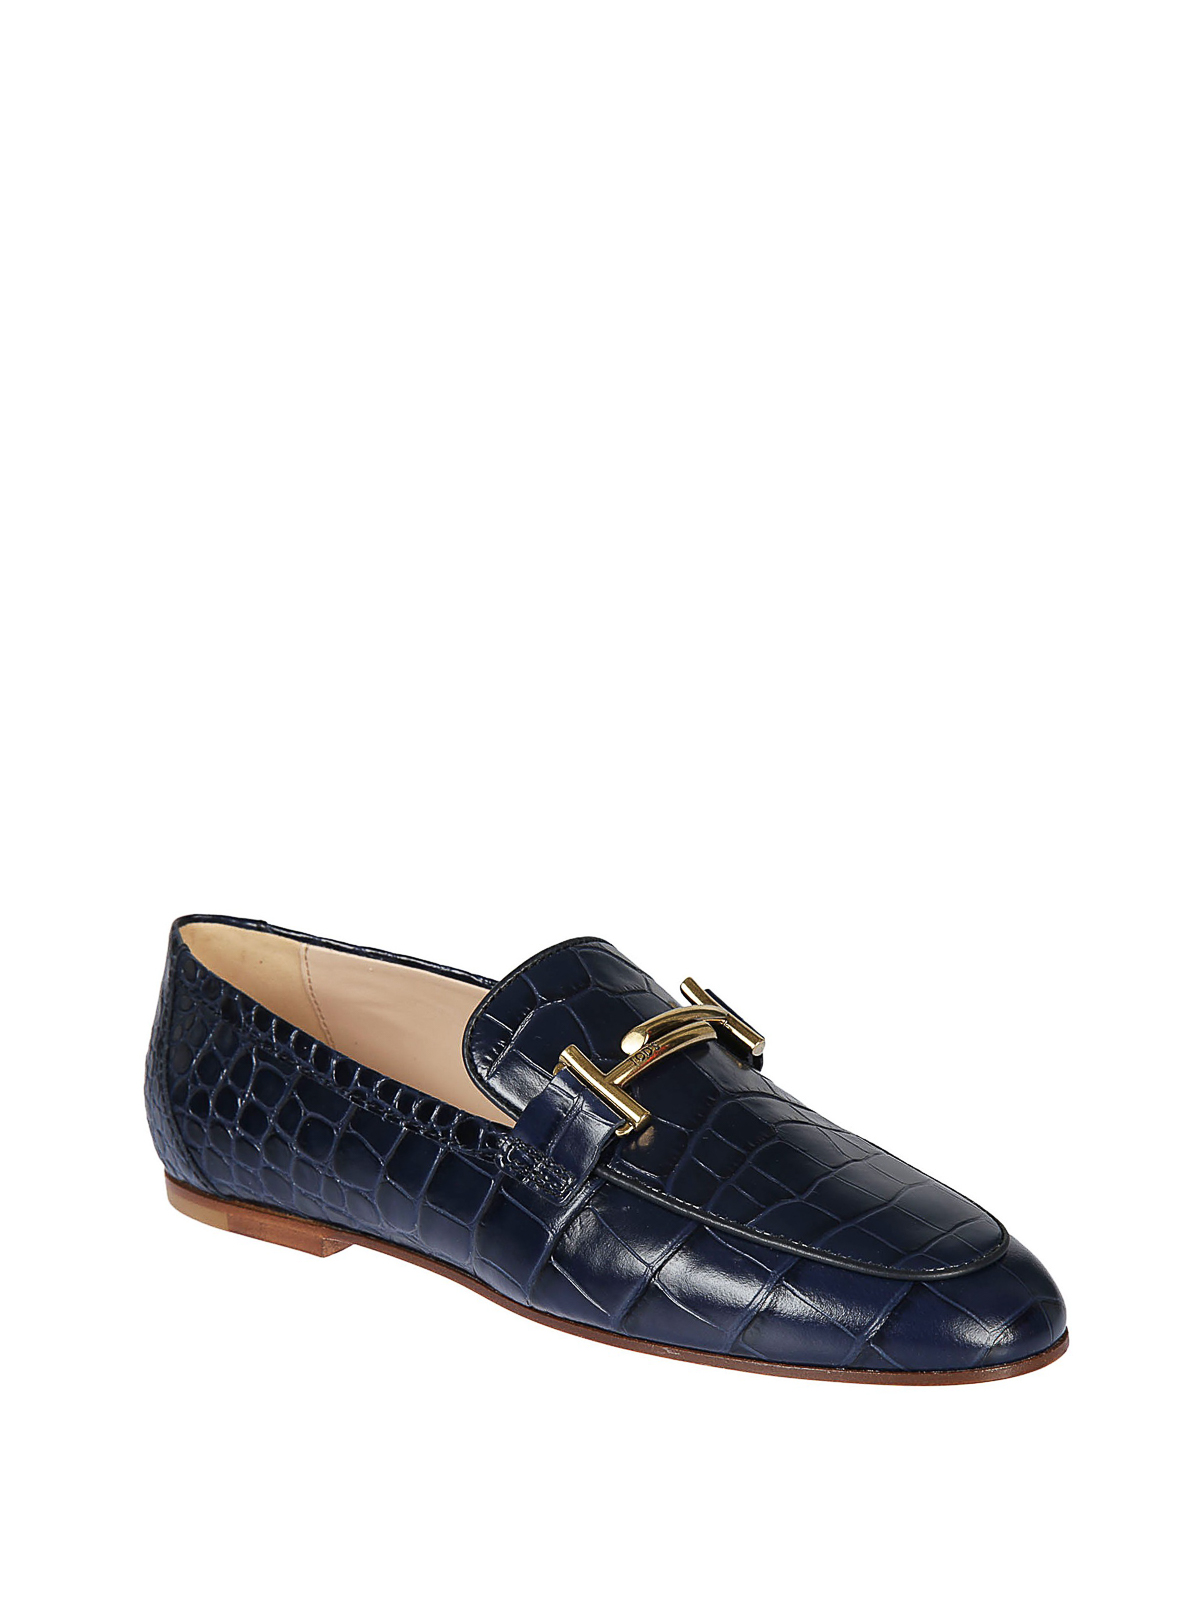 6cbc49f693e Tod S - Gommini Double T reptile print blue loafers - Loafers ...